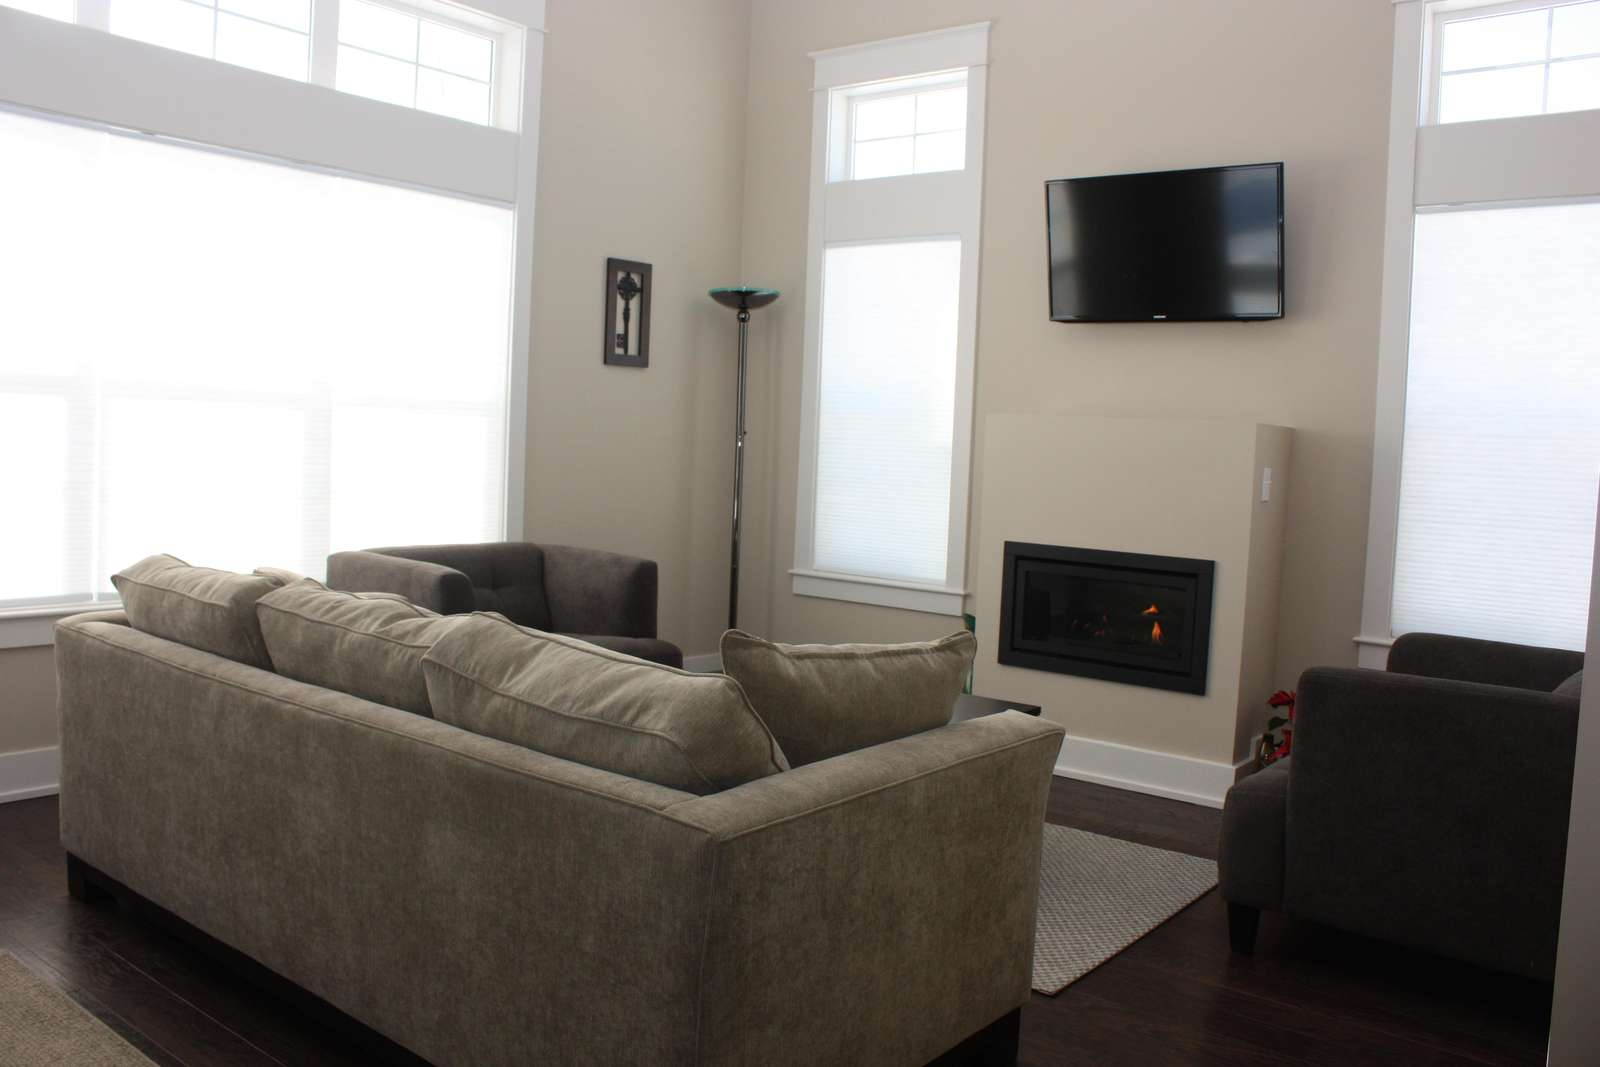 Comfortable living room with fireplace, TV and fold out couch